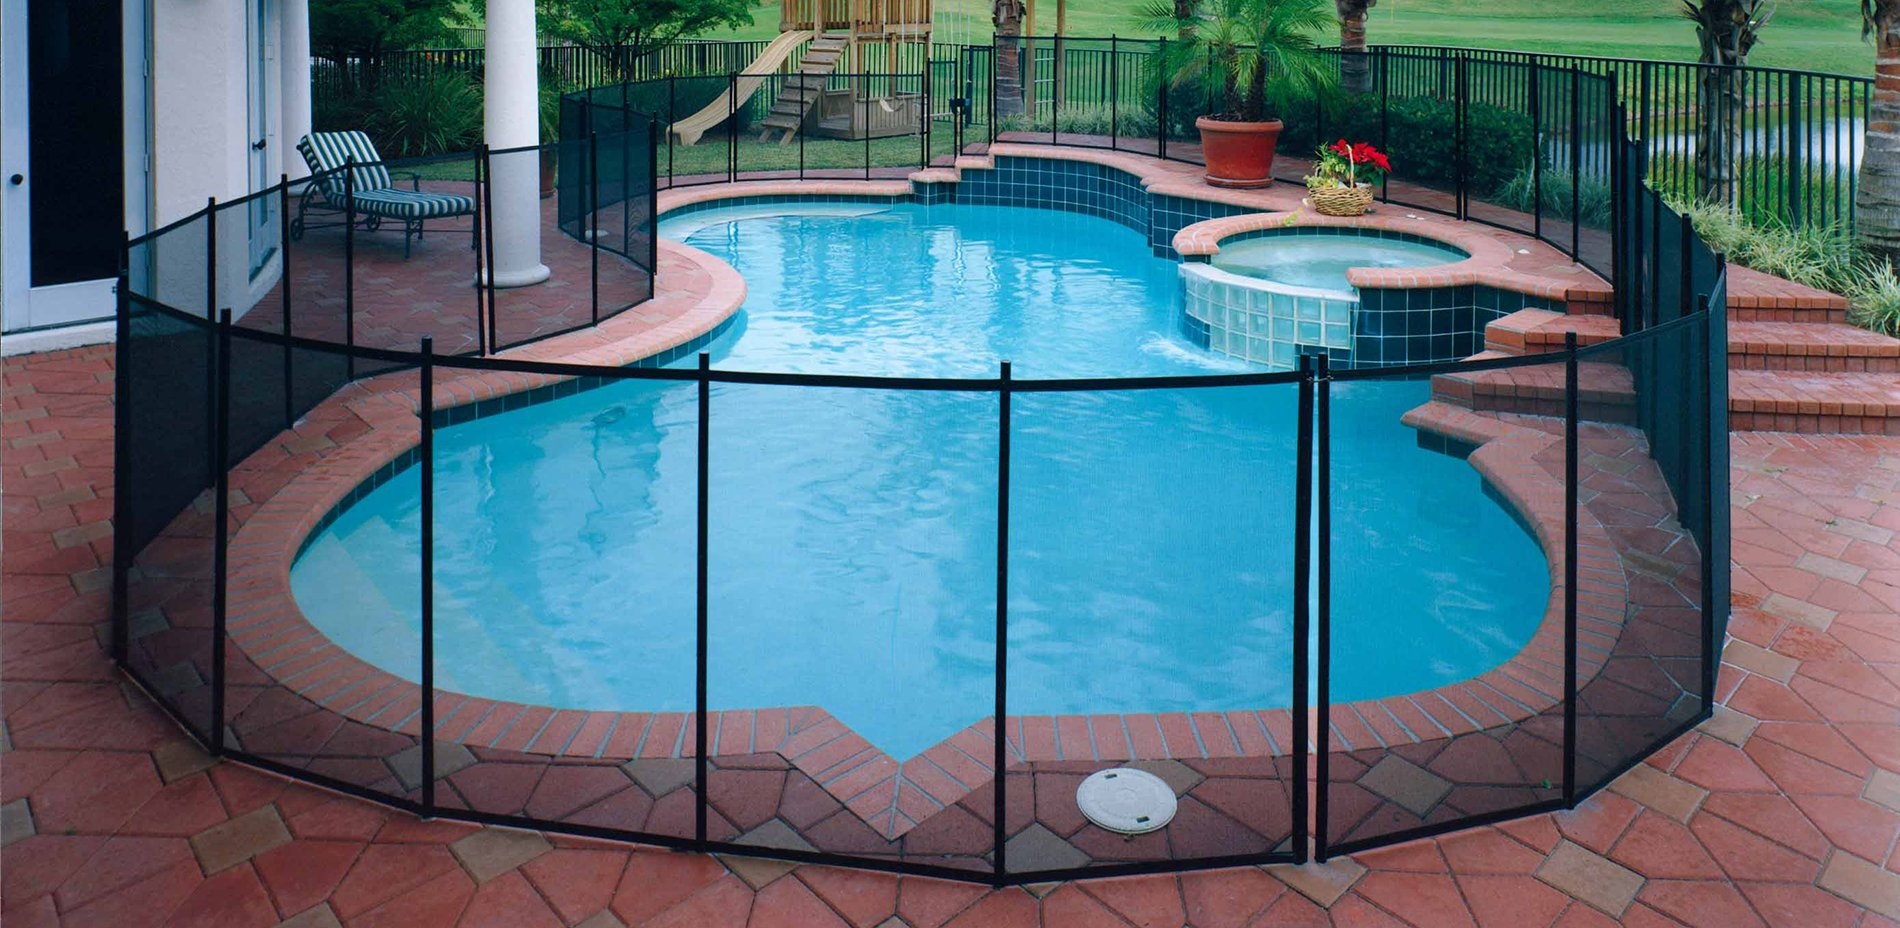 Pool fencing life saver pool fence systems for Above ground pool gate ideas